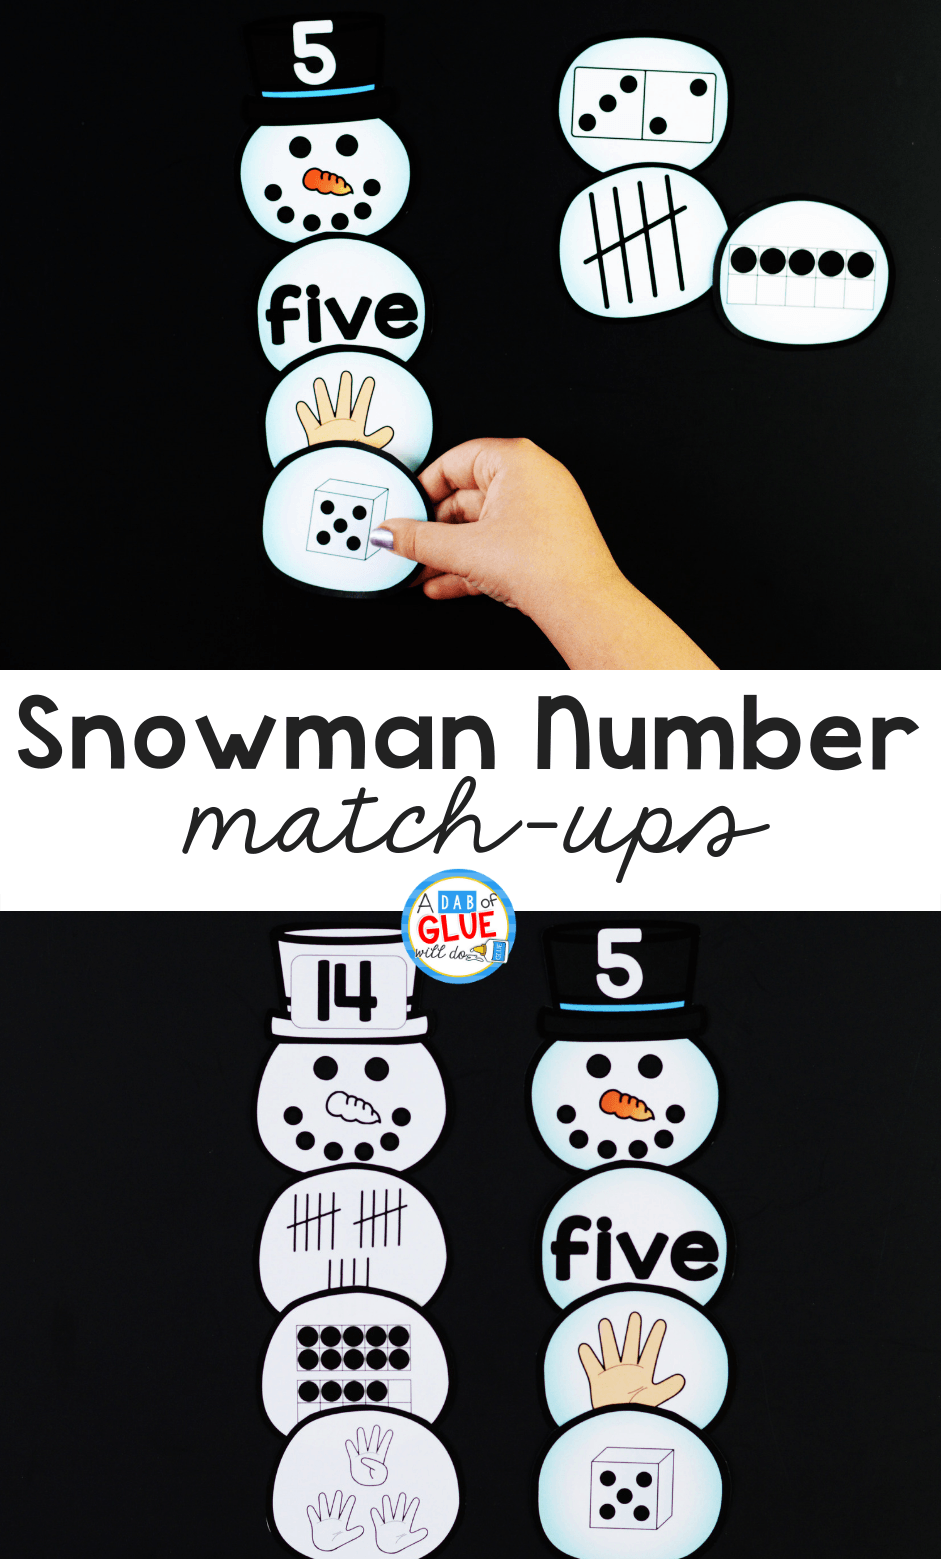 Snowman Number Match-Up